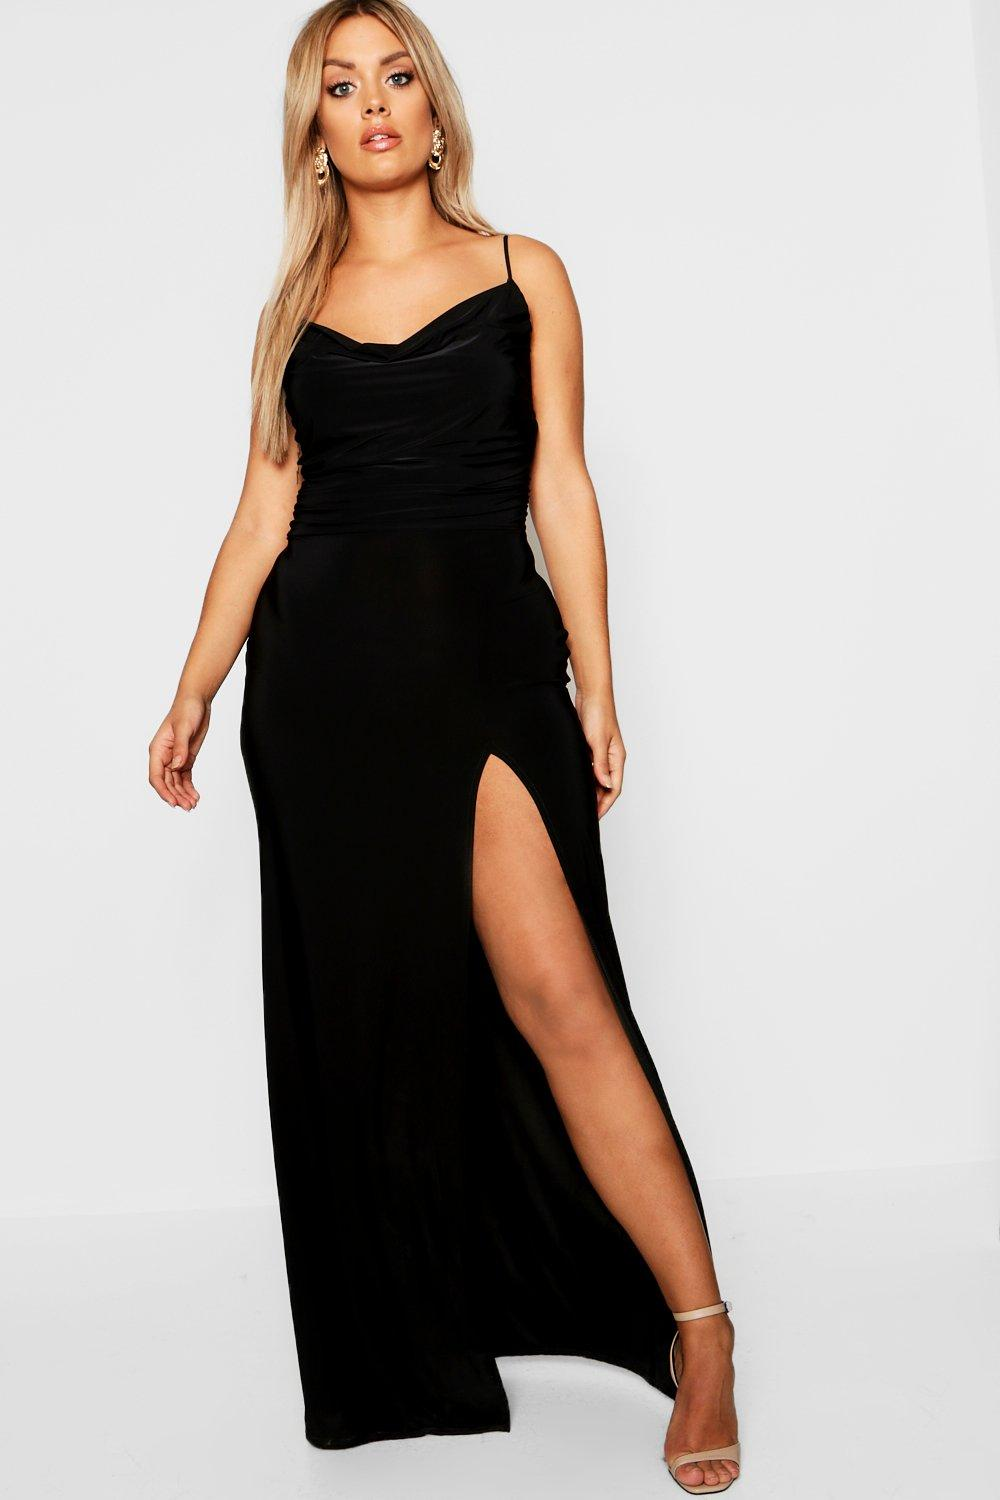 9d75a1337f2 ... Cowl Neck Maxi Dress. Hover to zoom